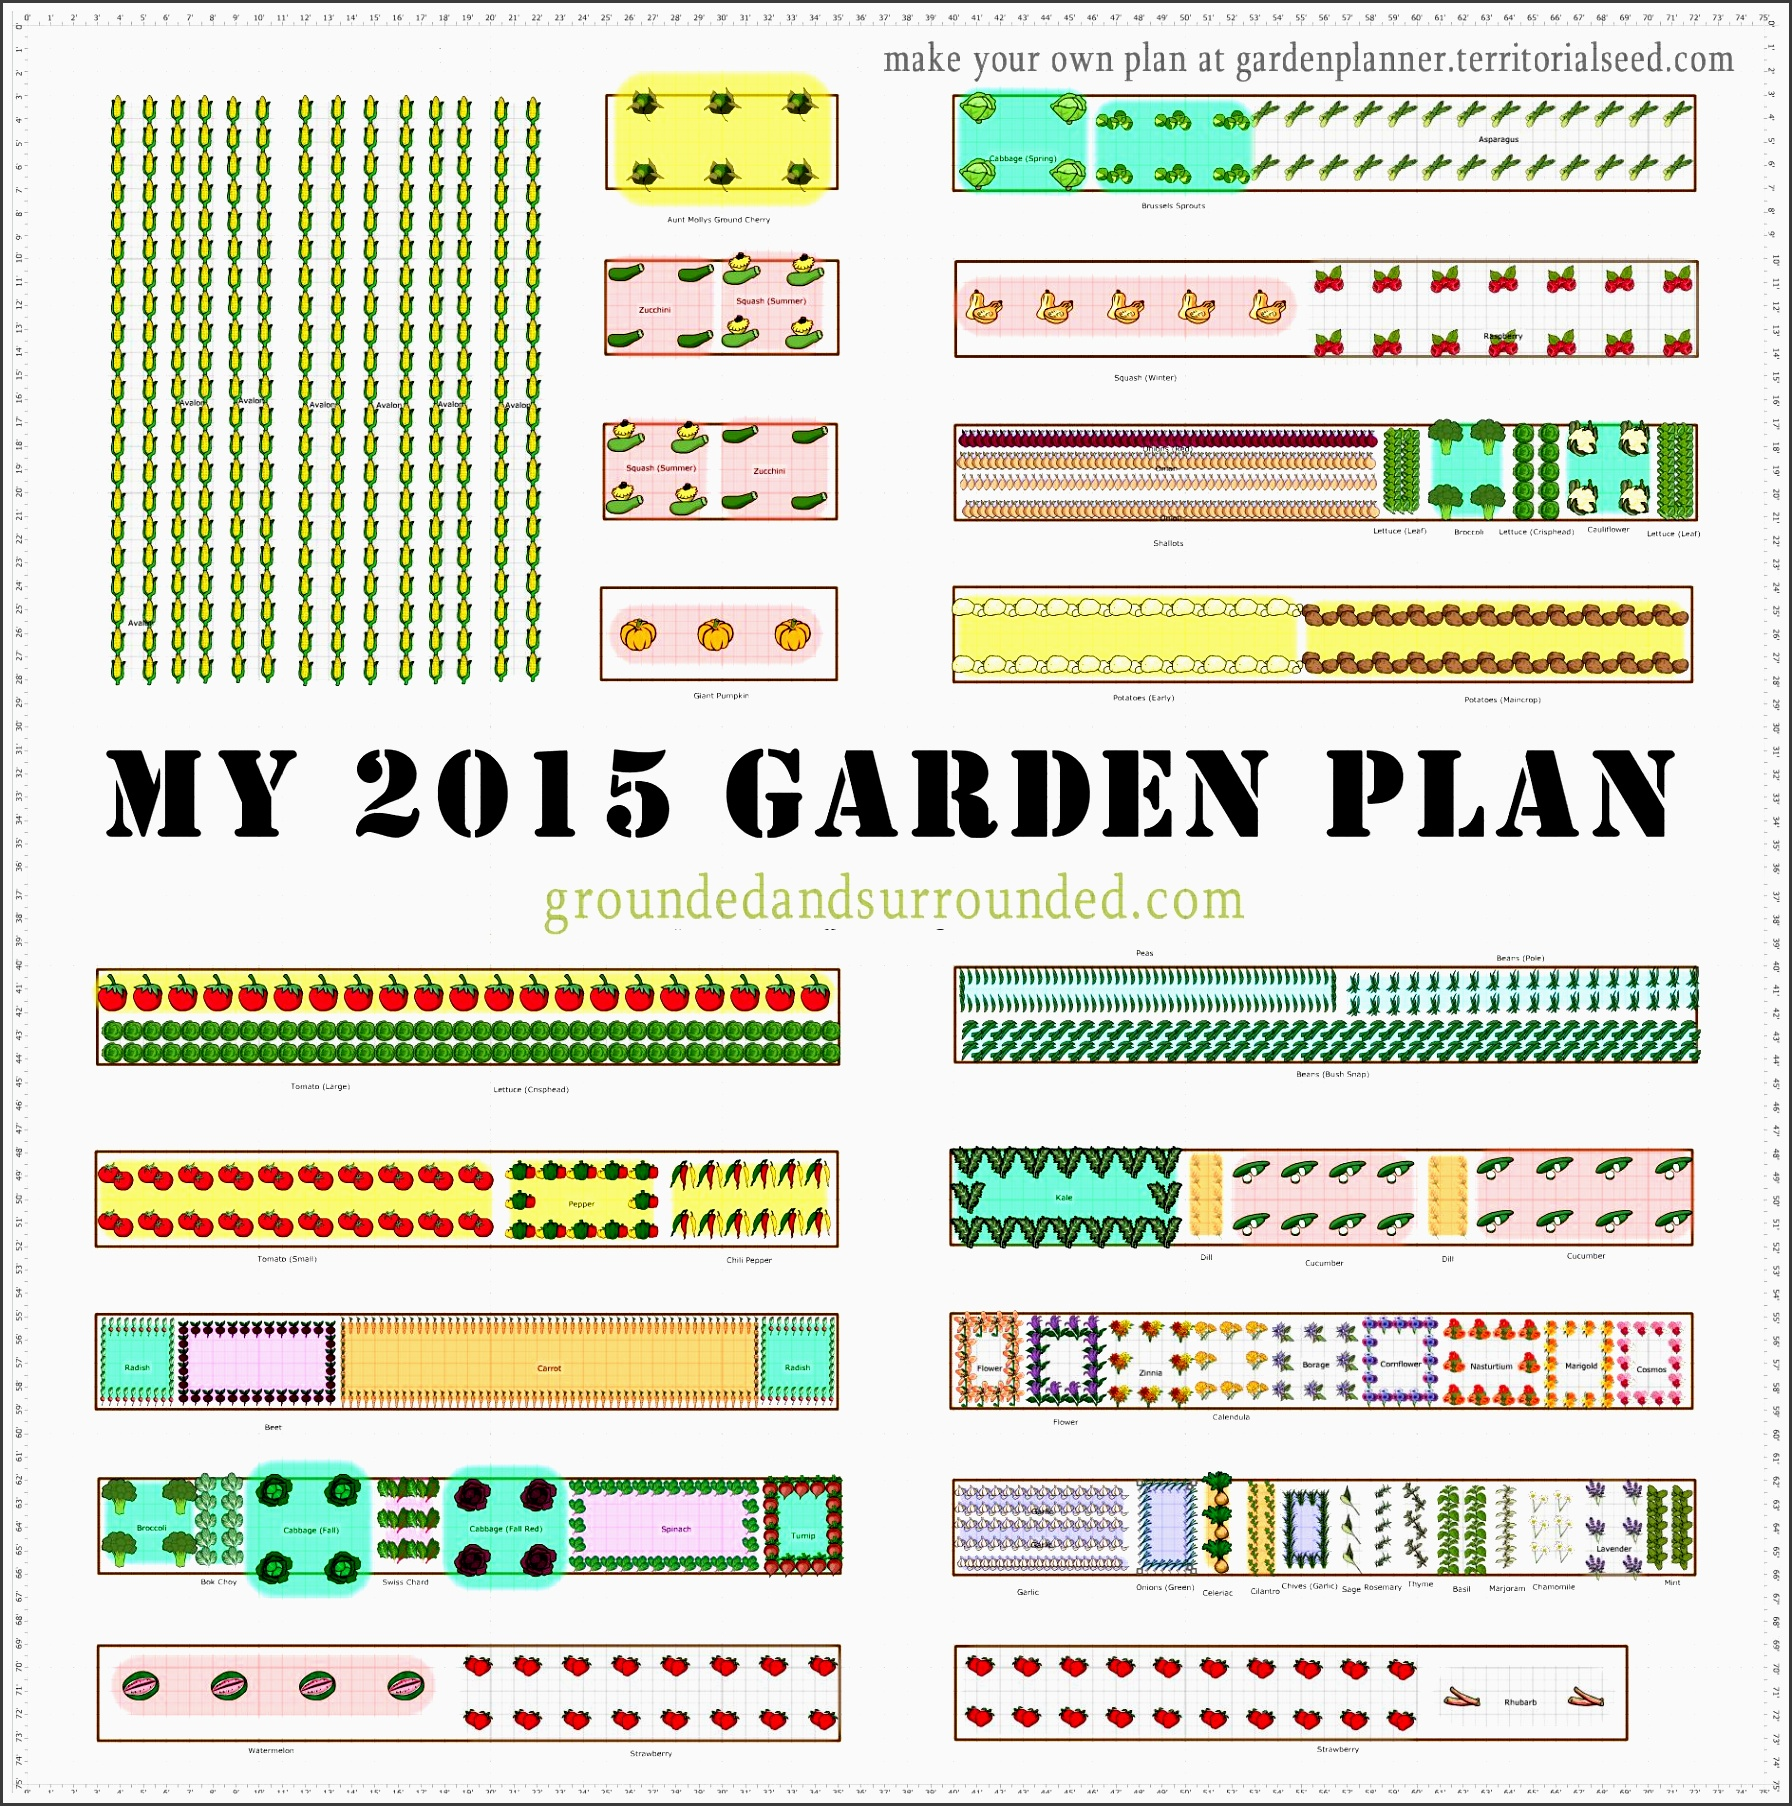 i have often wished that more gardeners shared their large ve able garden plans online this